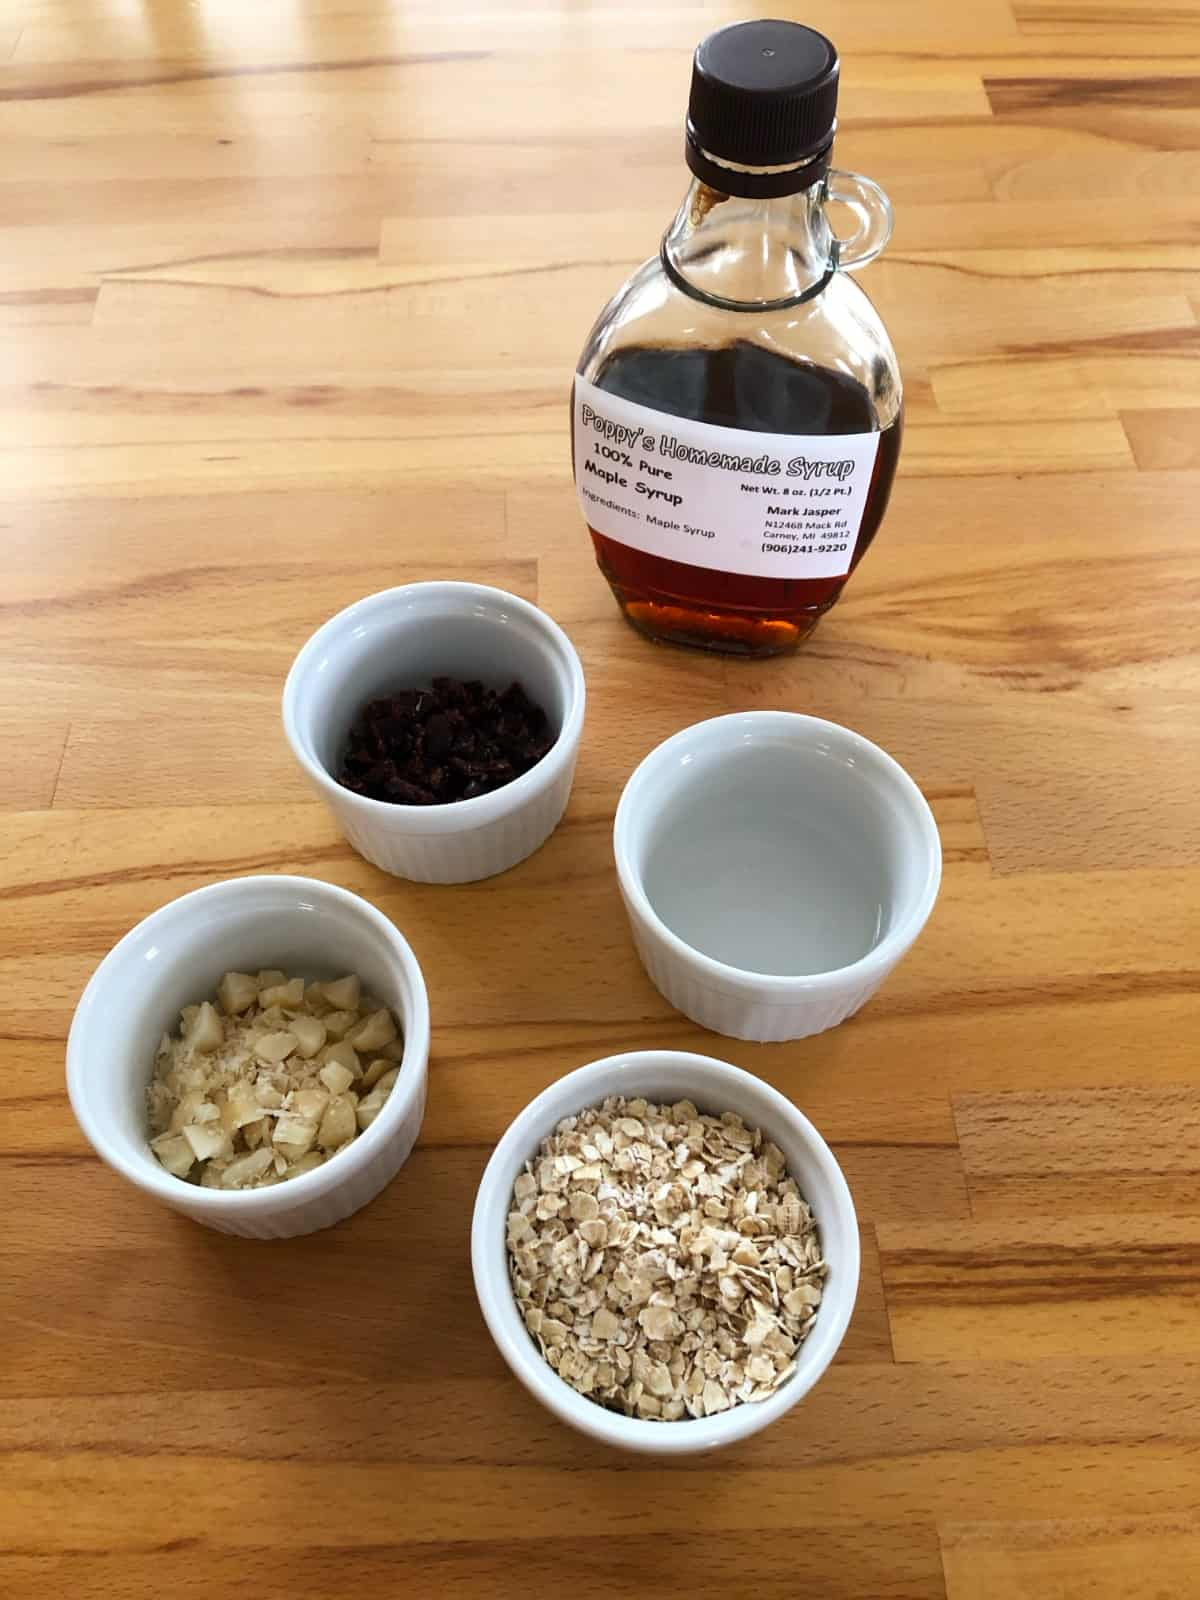 Ingredients for making granola, including maple syrup, oats, coconut oil, raisins and chopped macadamia nuts.